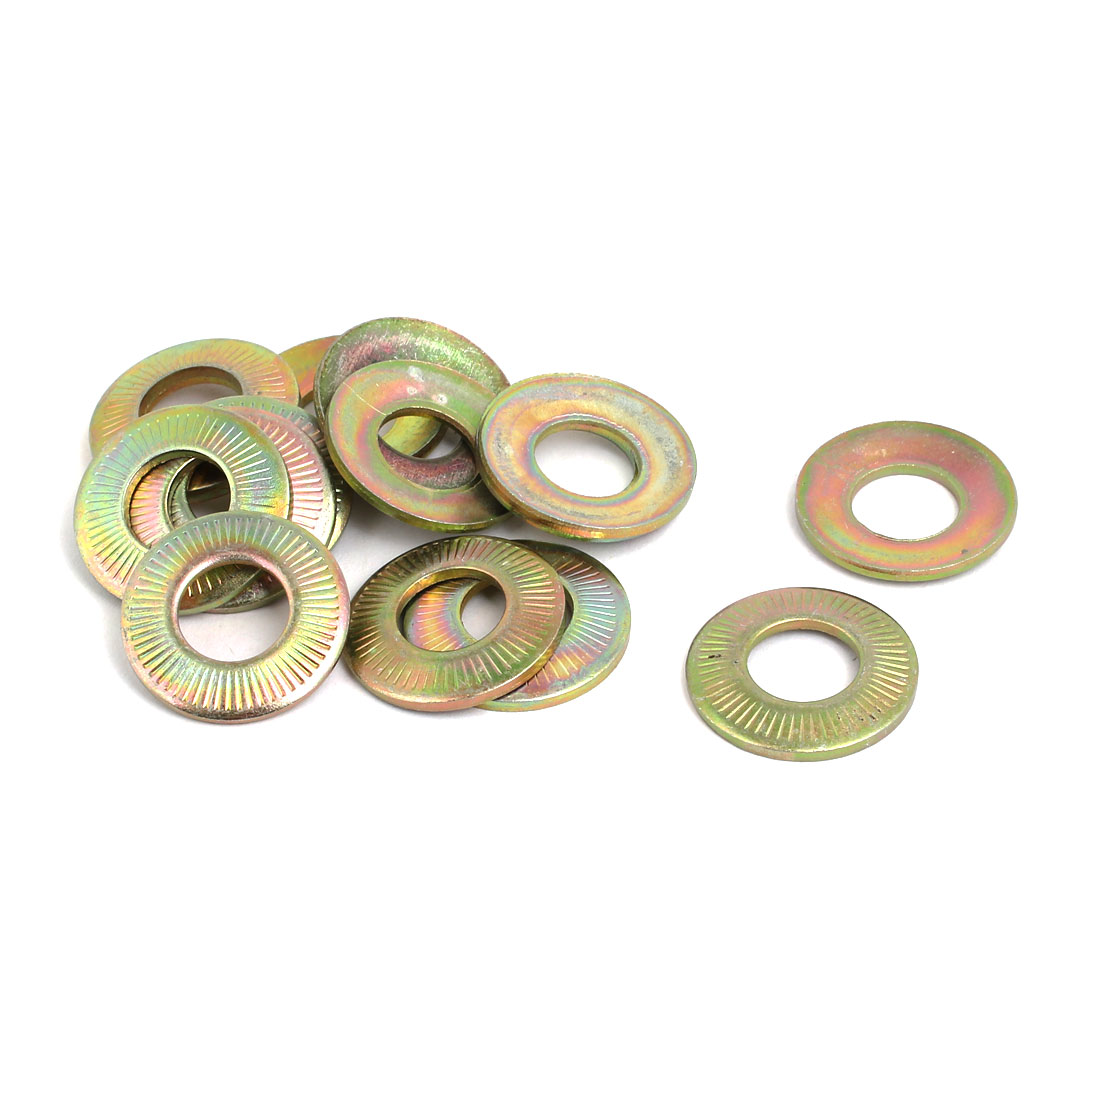 M12 Inner Dia Carbon Steel Serrated Conical Washer Bronze Tone 15pcs